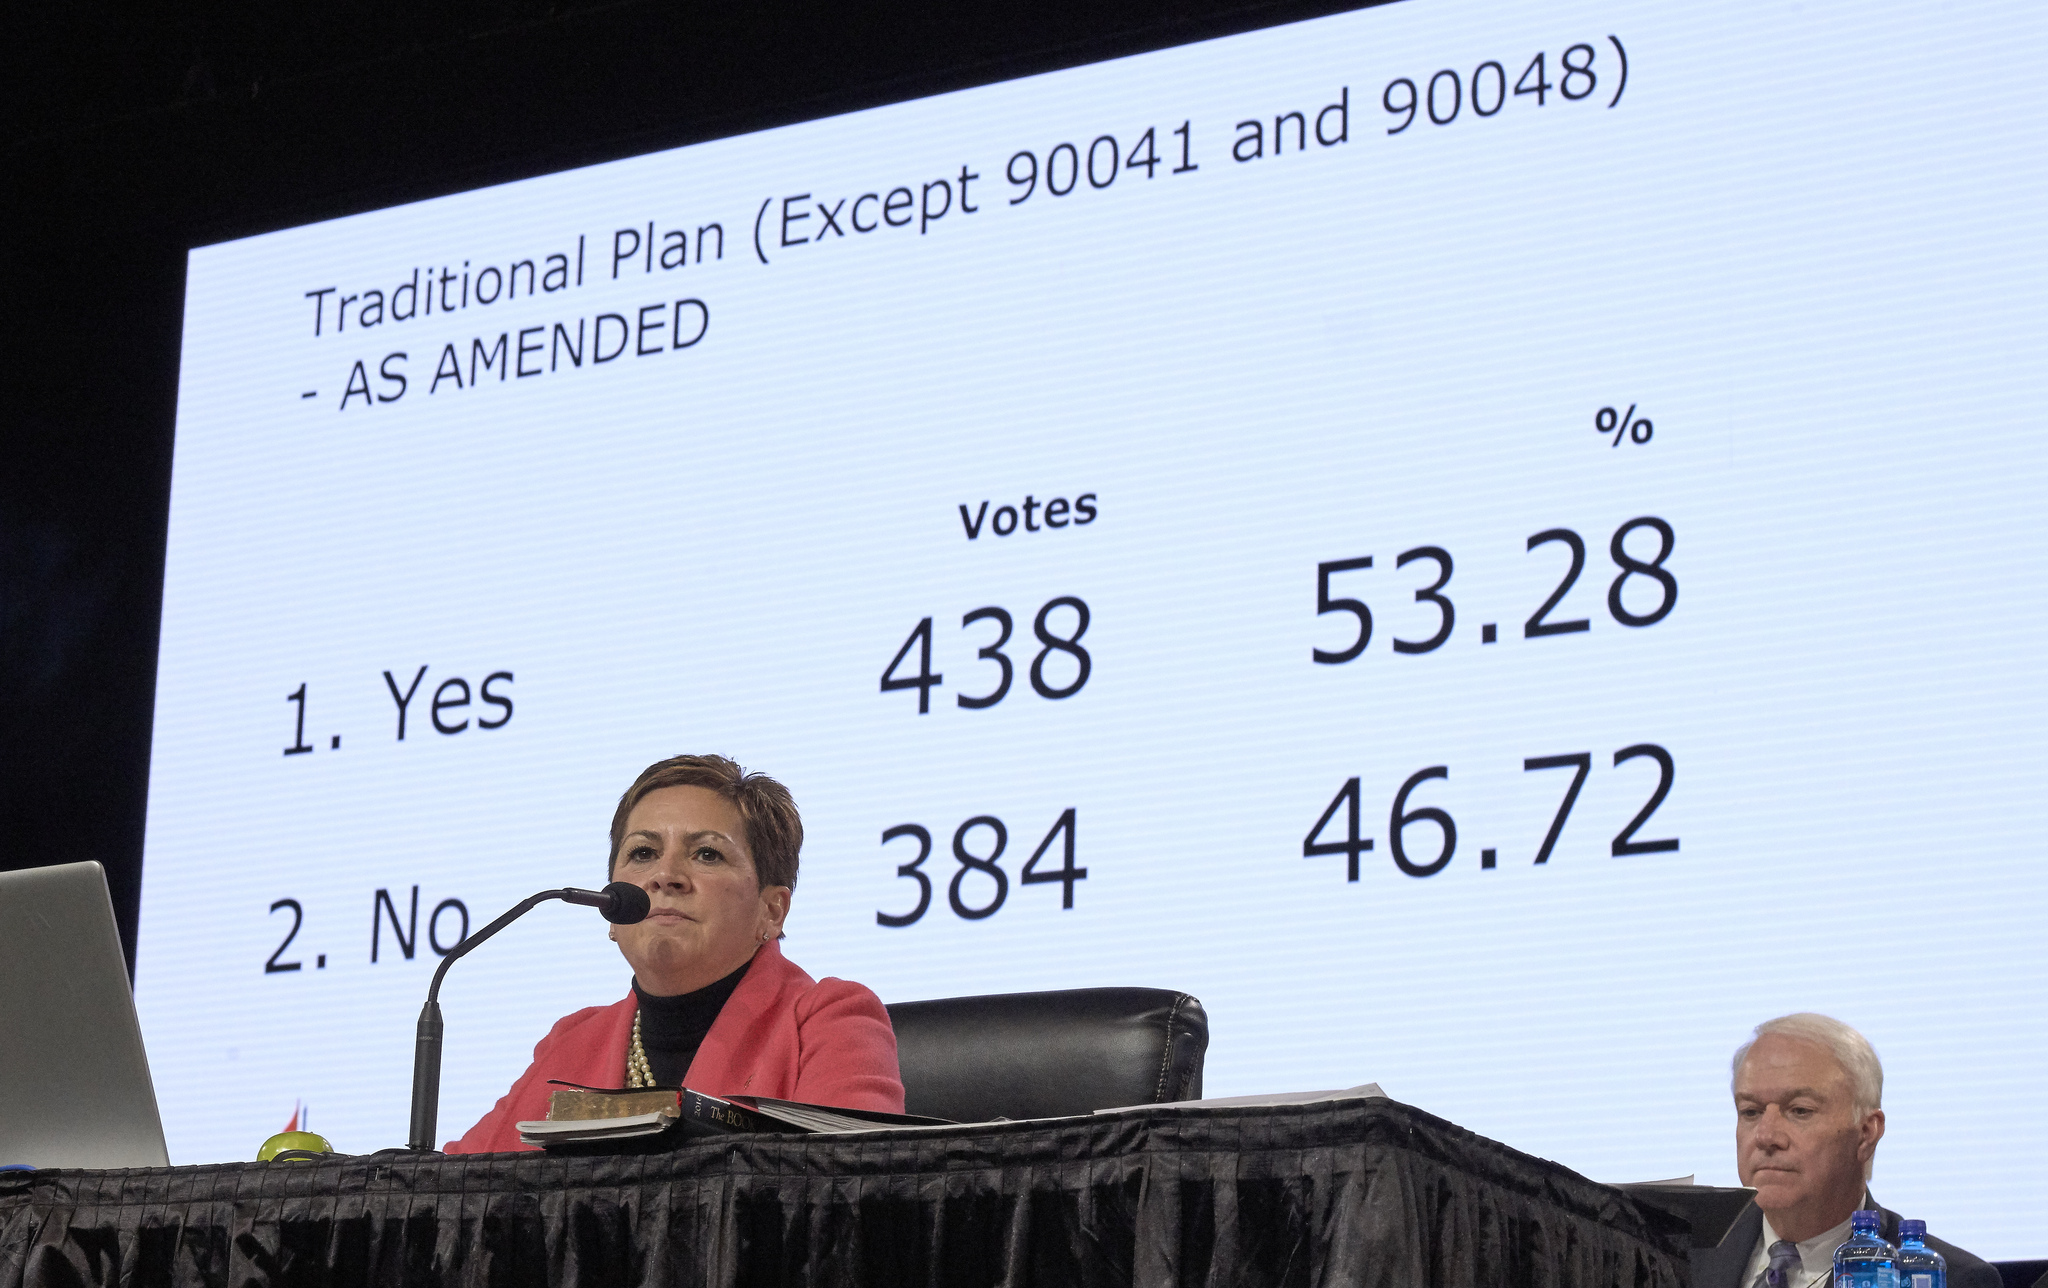 Bishop Cynthia Fierro Harvey observes the results from a Feb. 26 vote for the Traditional Plan, which affirms the church's current bans on ordaining LGBTQ clergy and officiating at or hosting same-sex marriage. The vote came on the last day of the 2019 General Conference in St. Louis. Photo by Paul Jeffrey, UMNS.